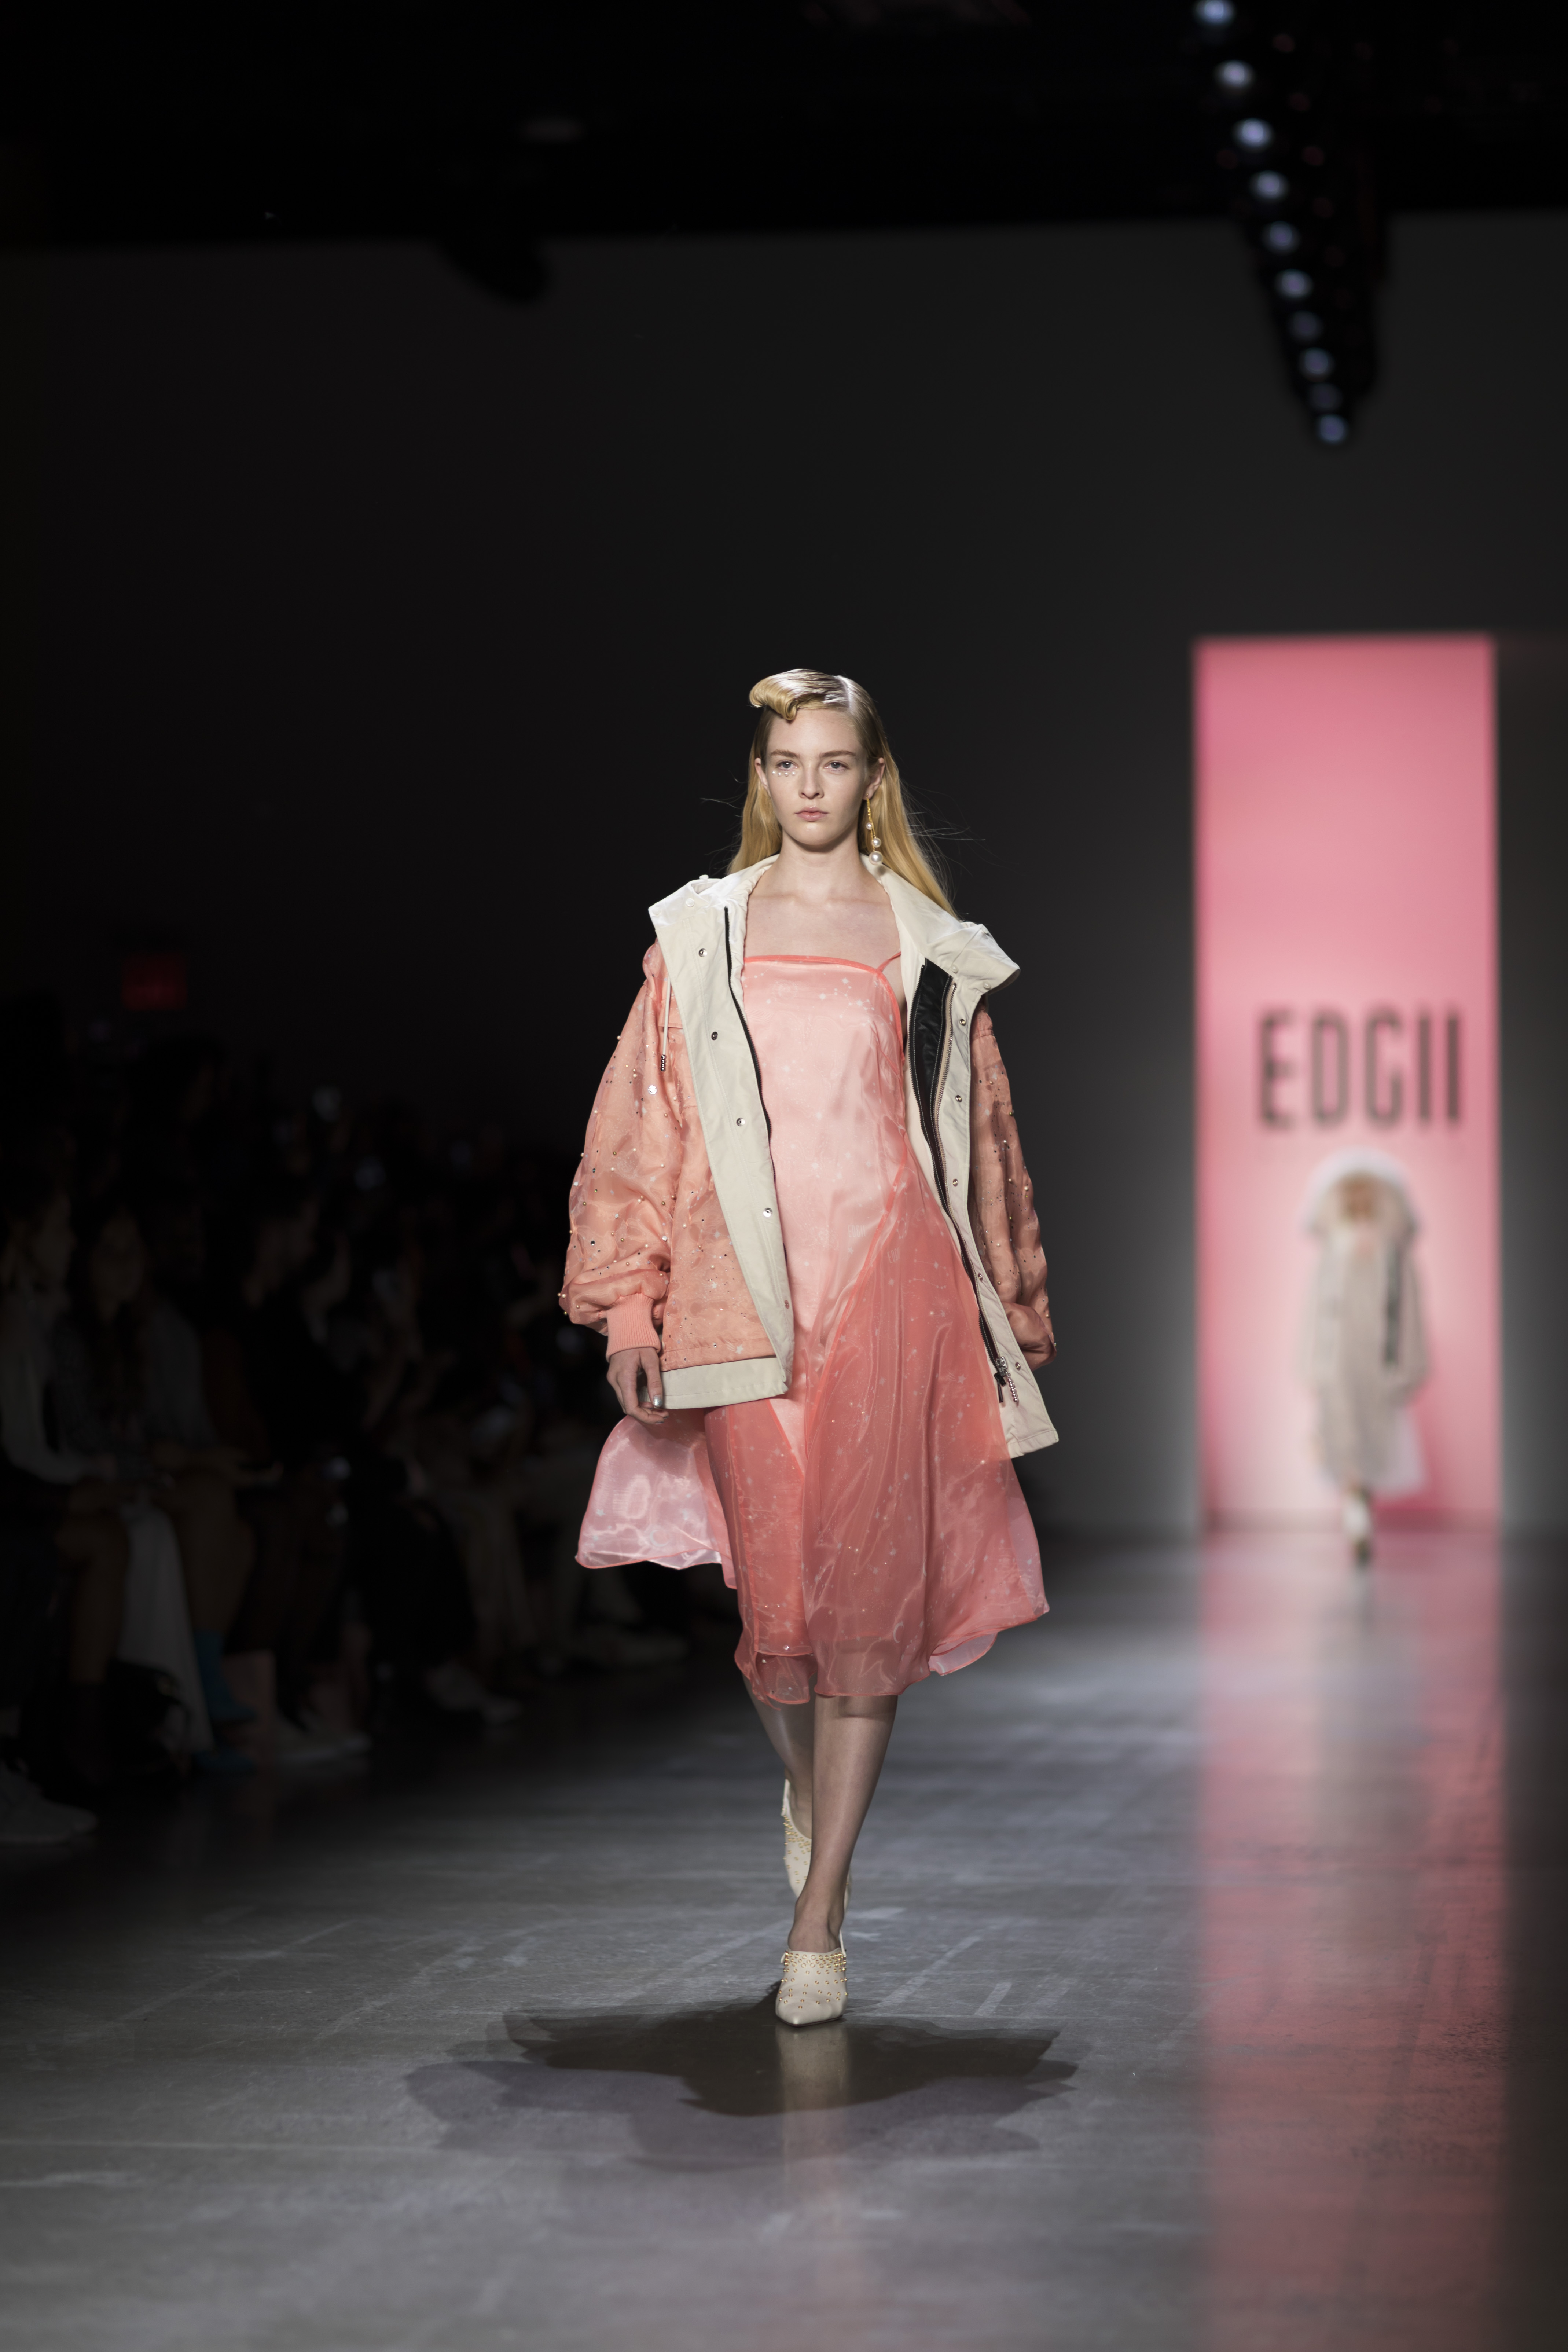 EDGII SS20. Photo by Ashley Gallerani.